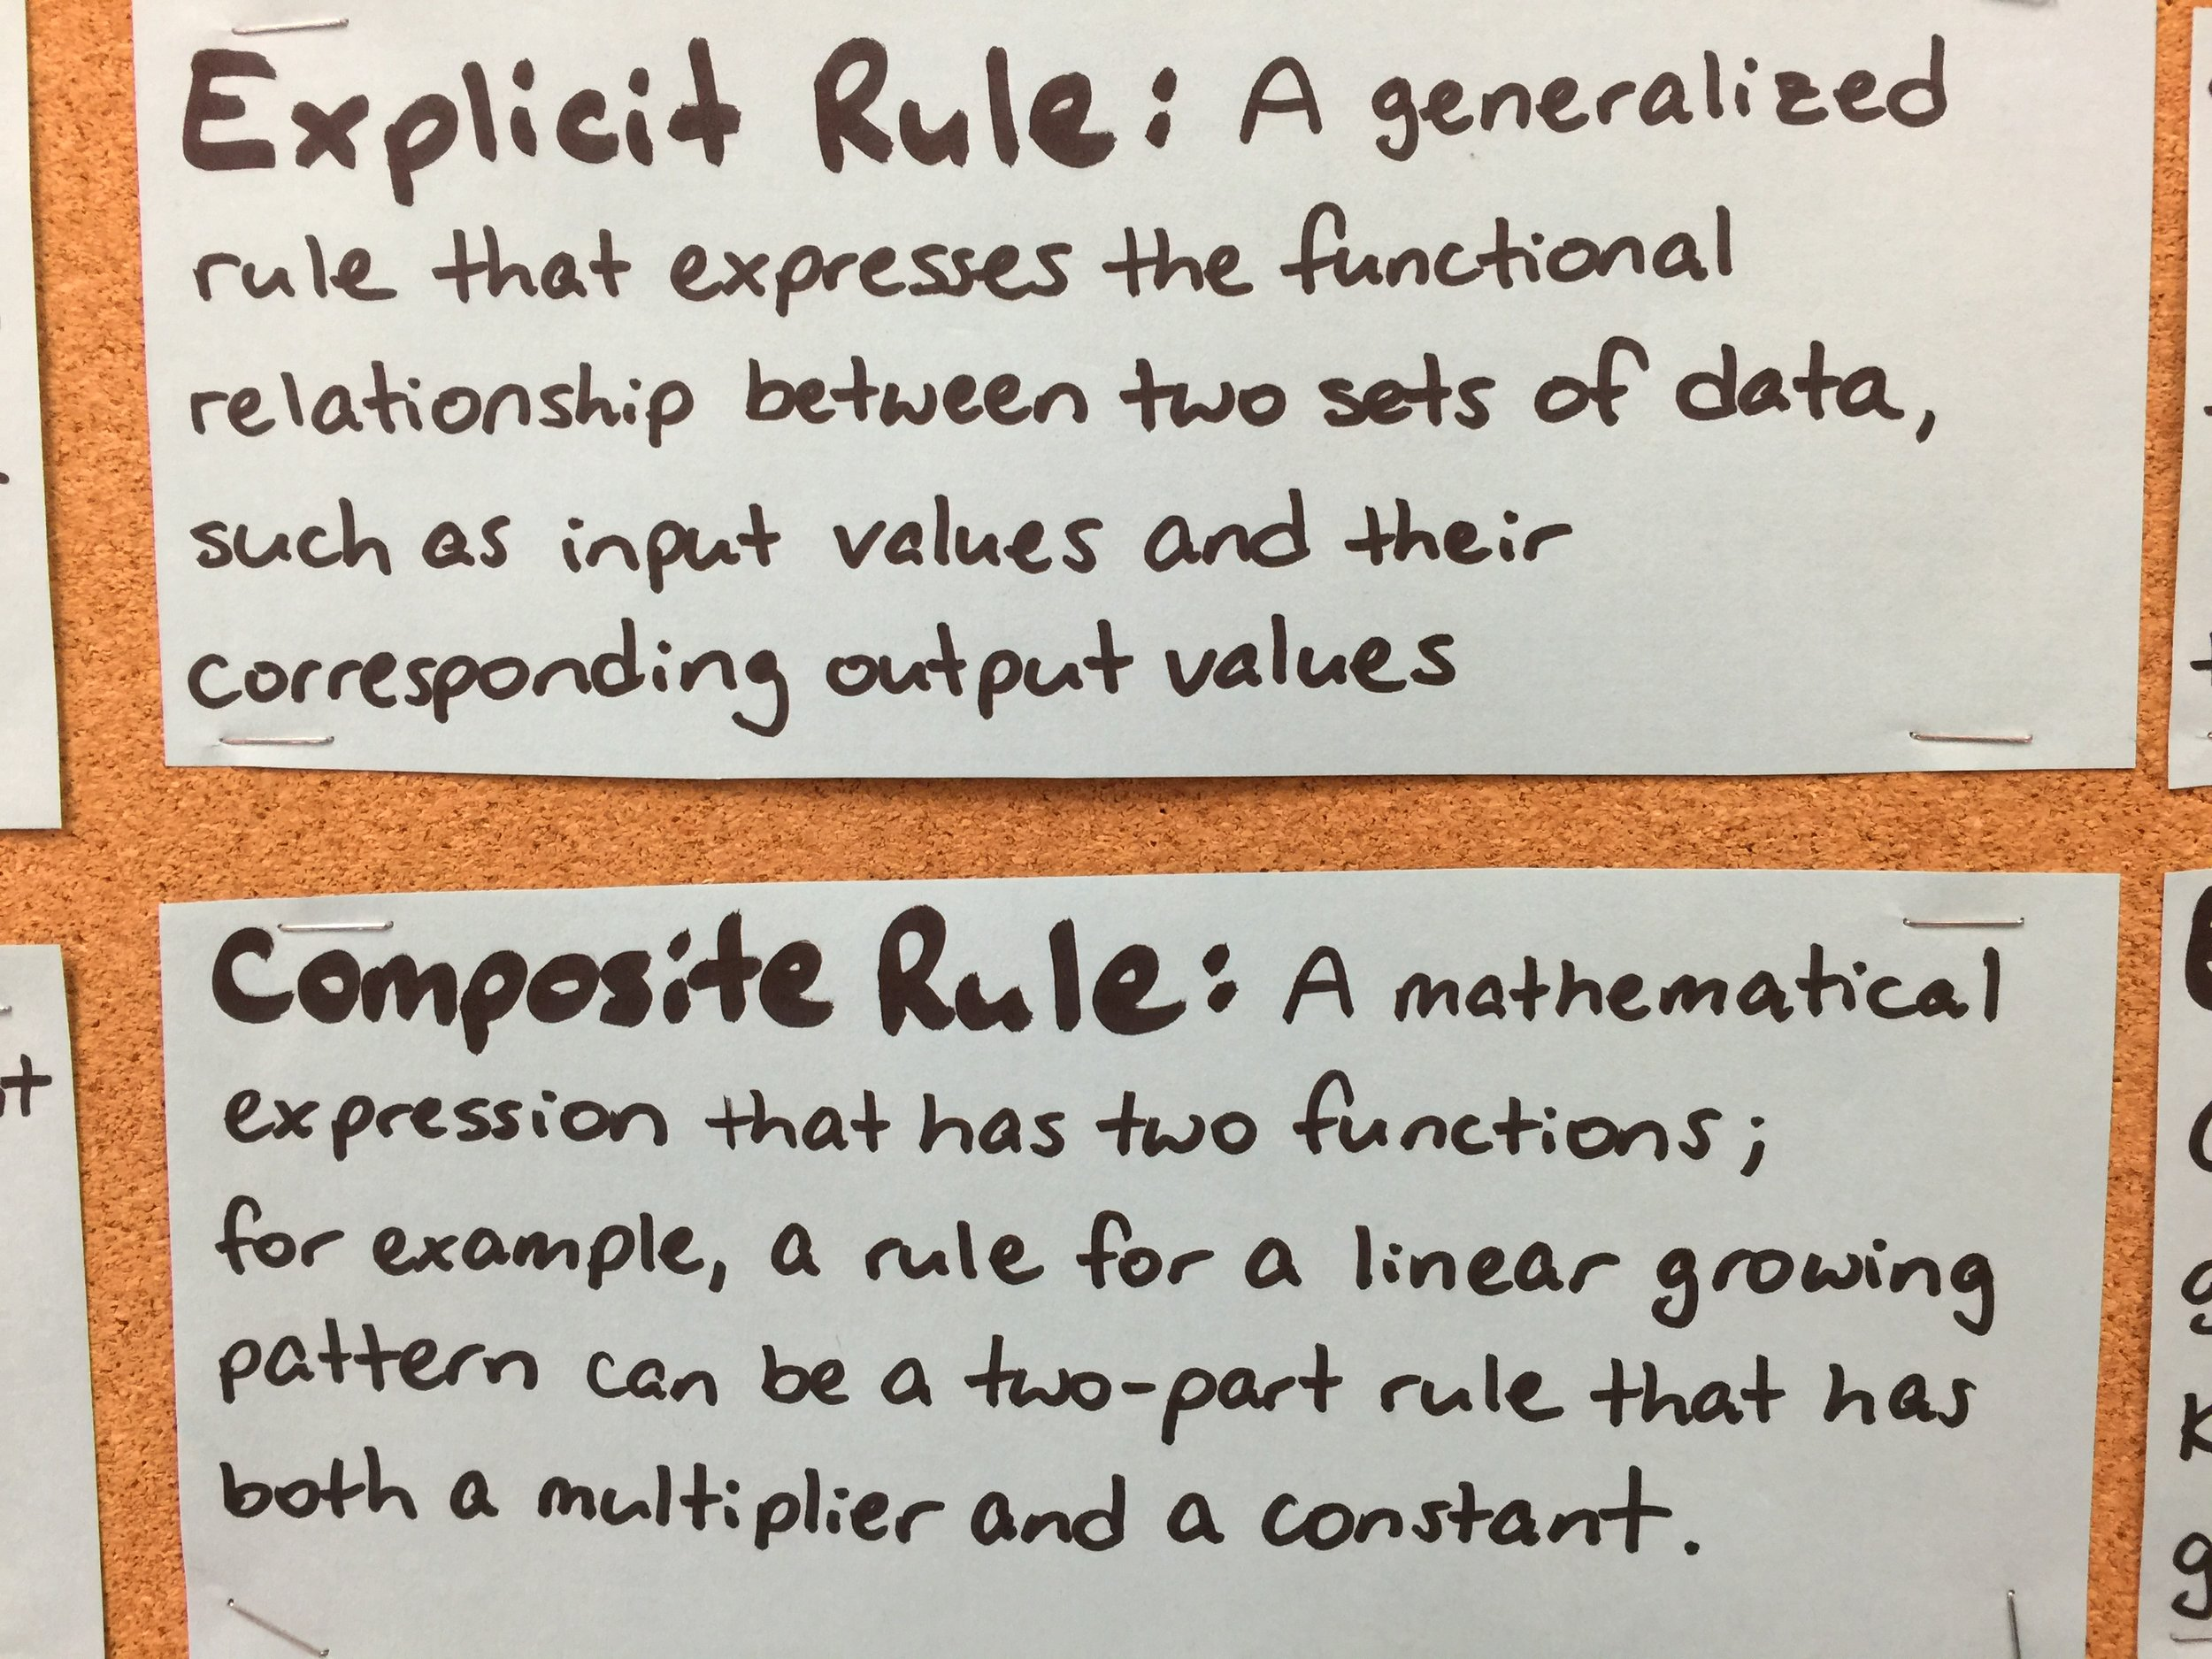 explicit-rule-composite-rule.jpg